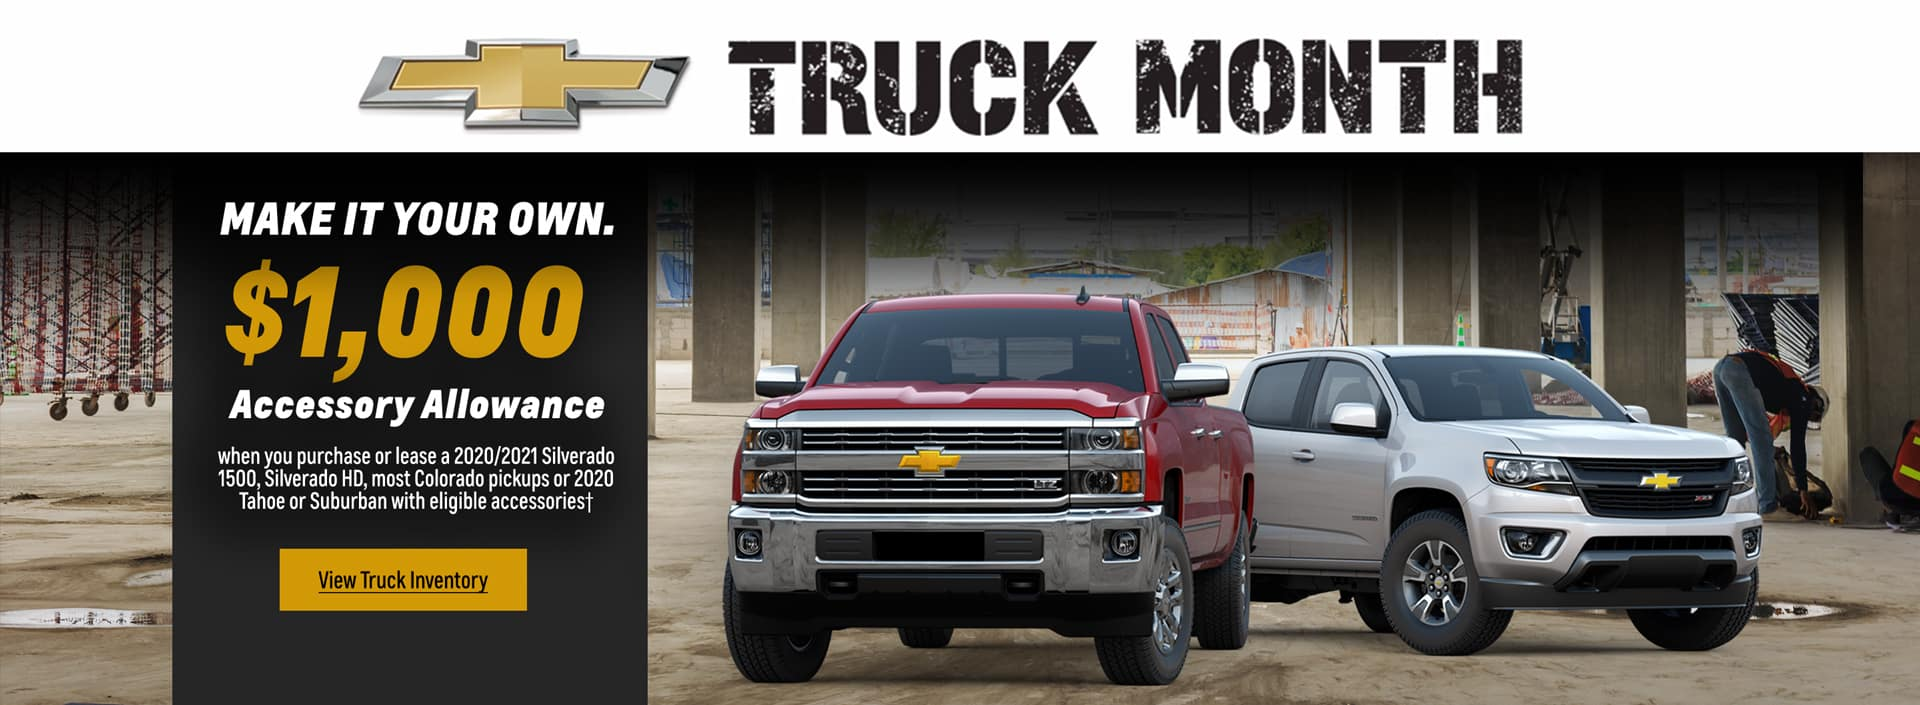 Chevy-Truck-Month